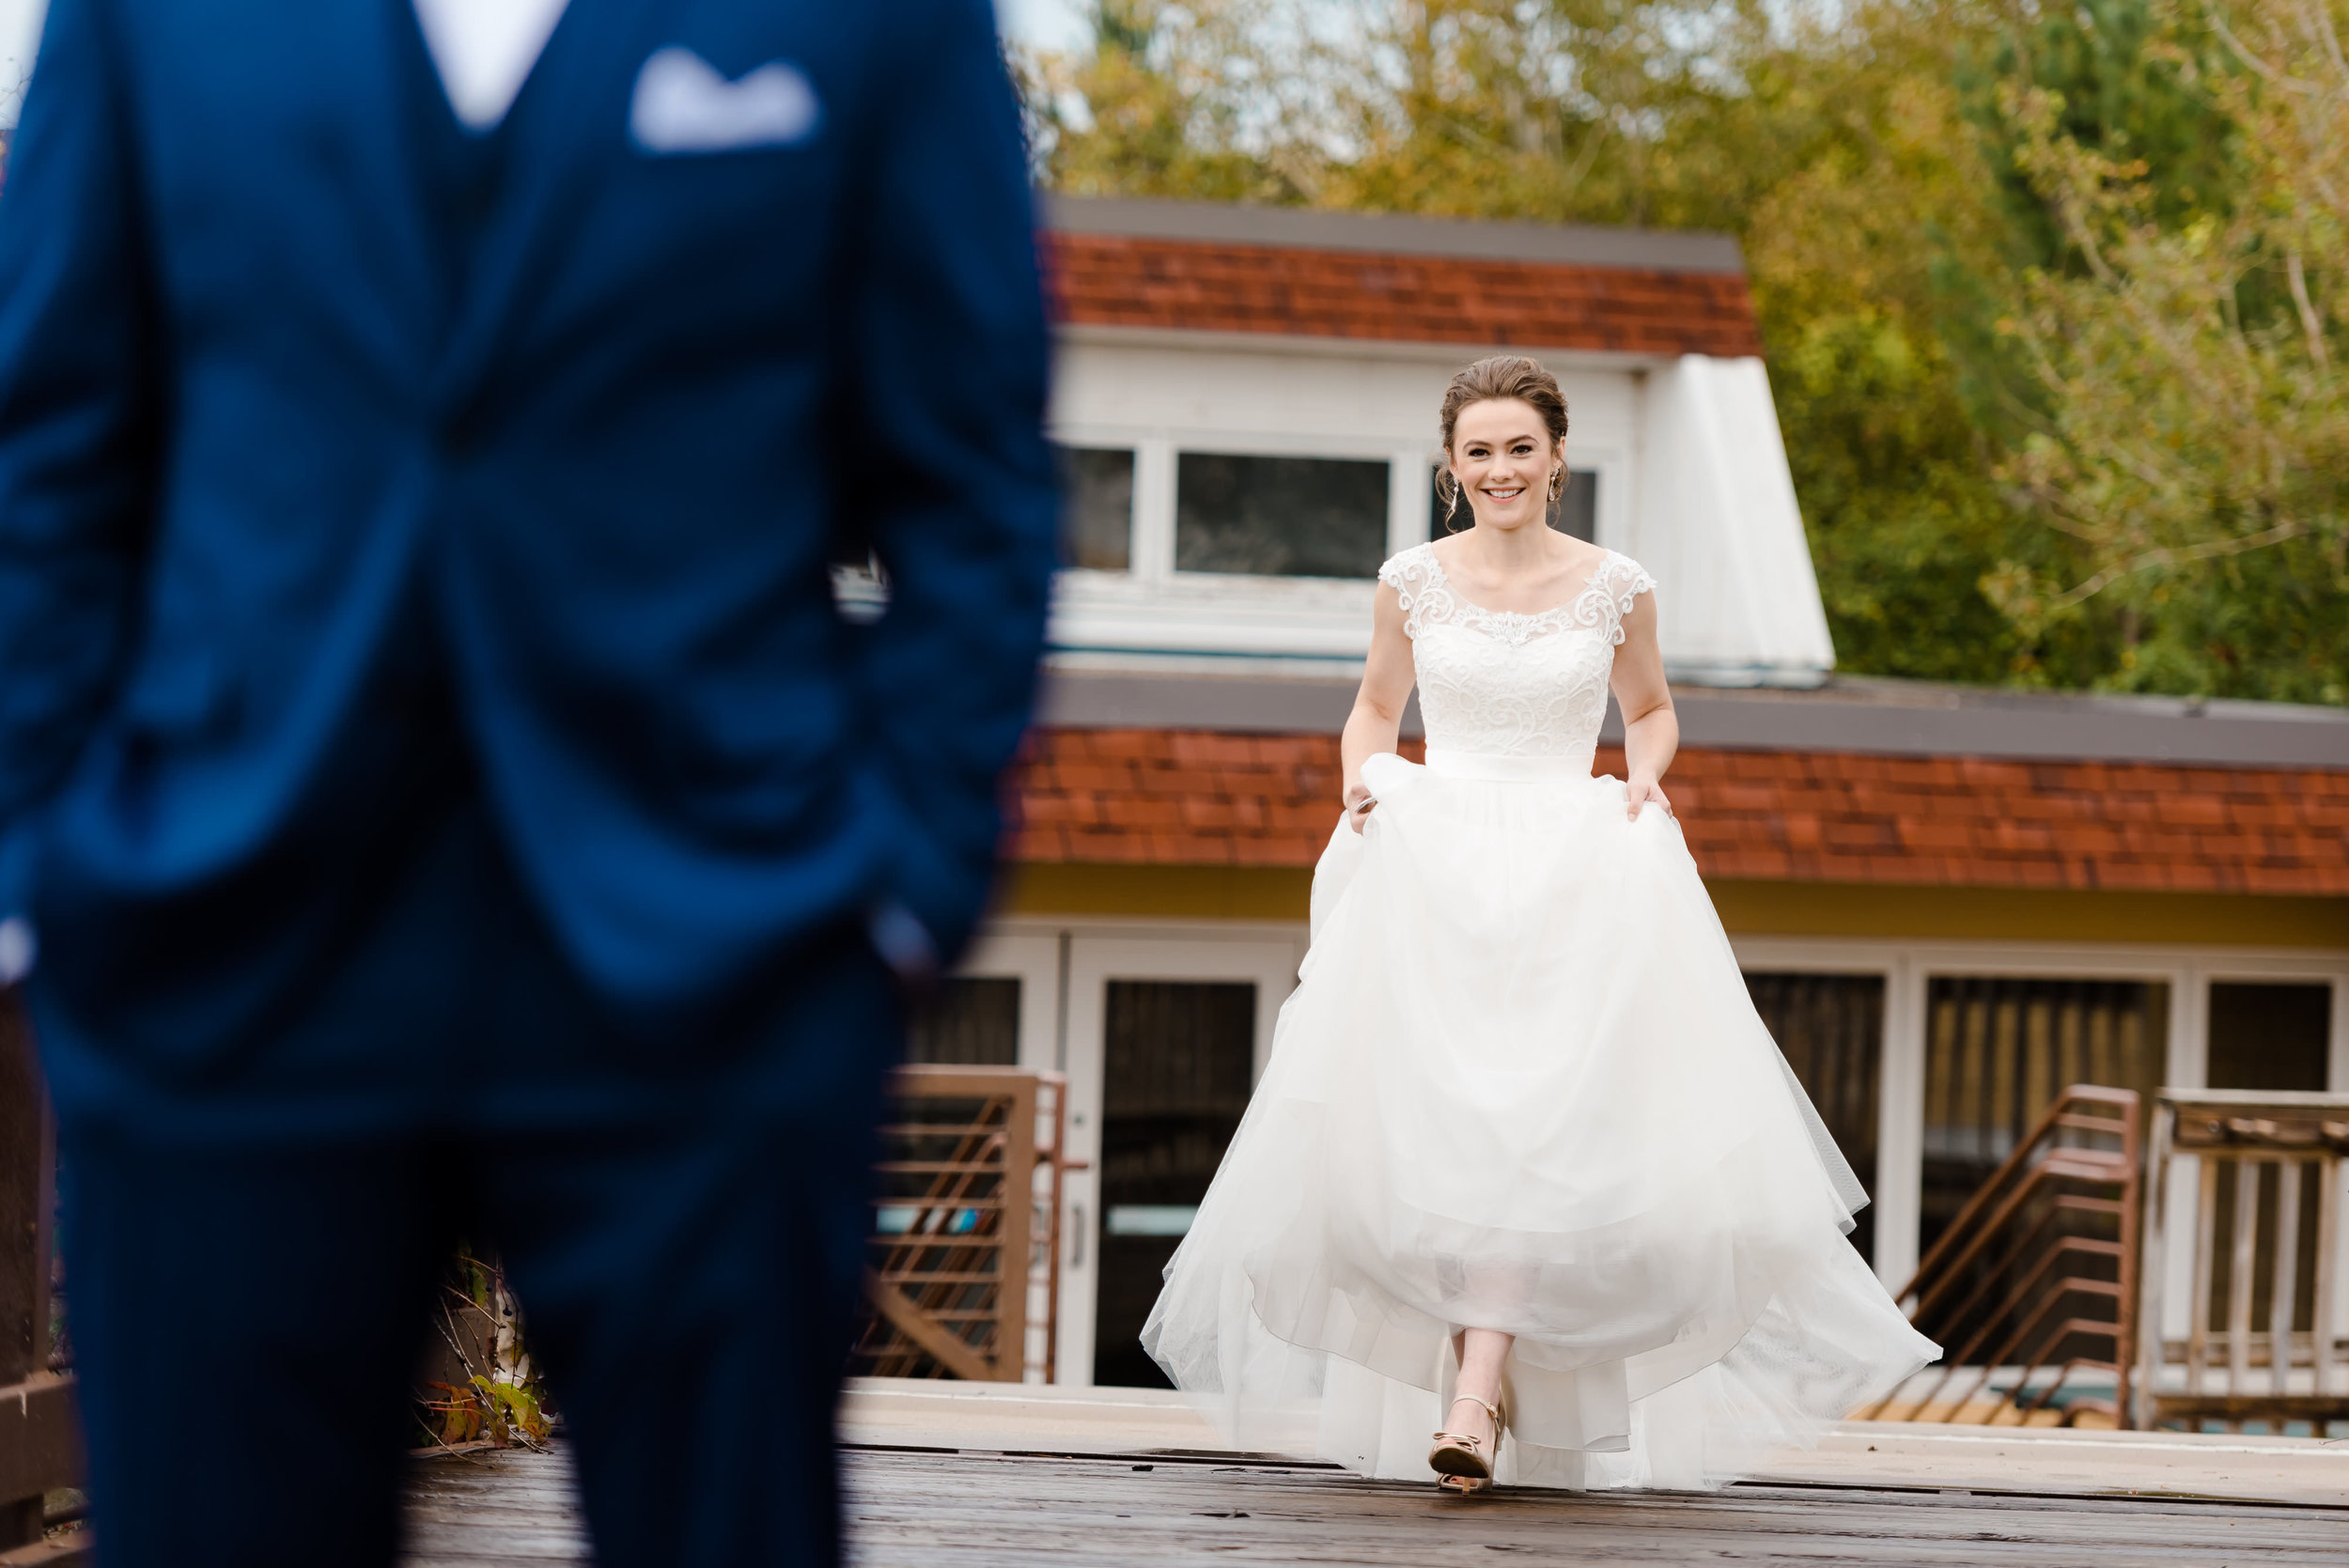 First Look Bride and Groom at Elm Creek Chalet Wedding